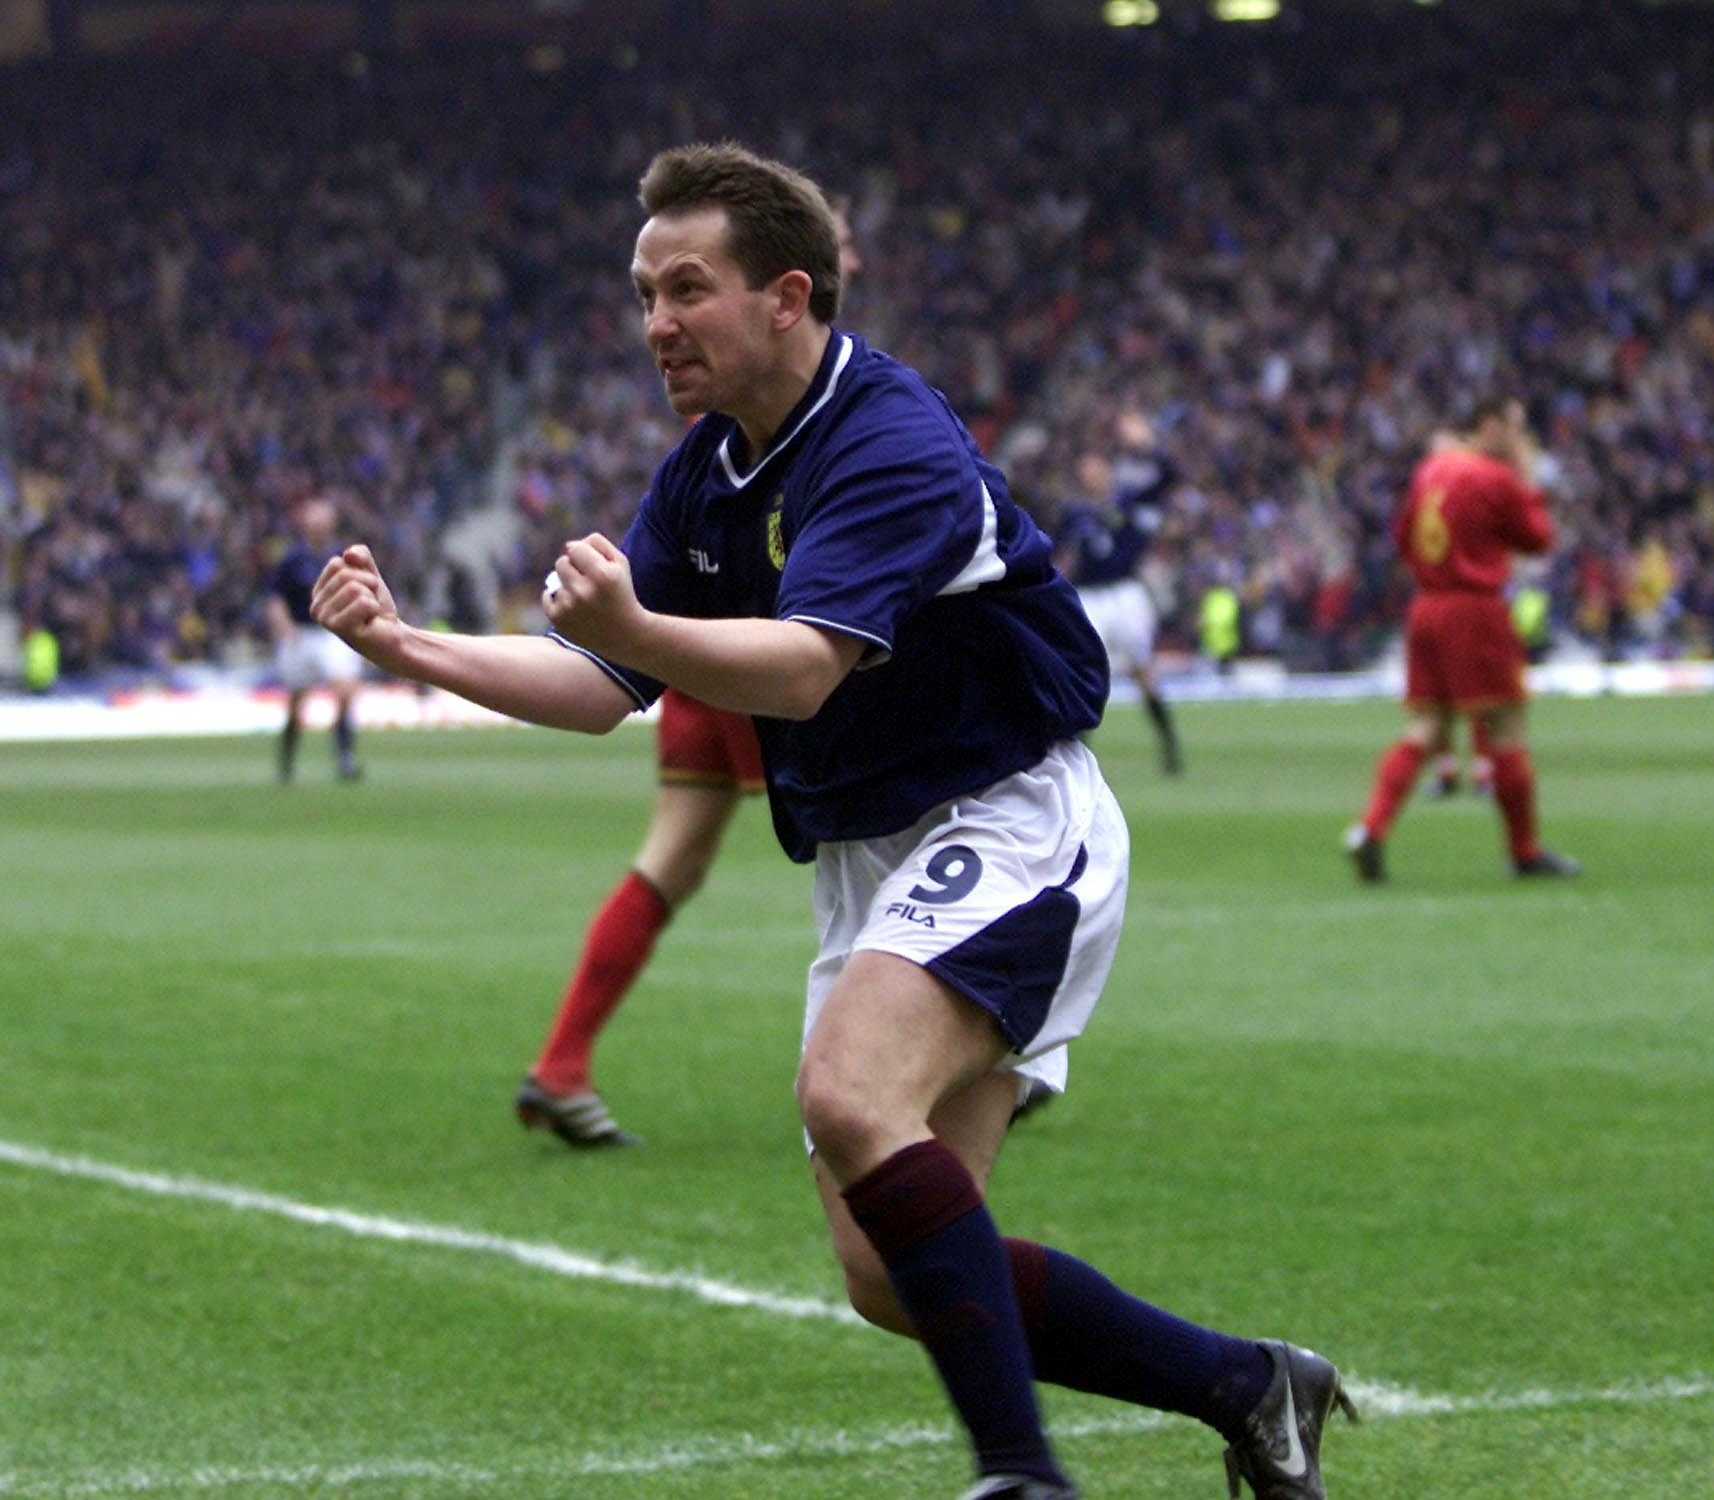 Billy Dodds celebrates after netting for Scotland against Belgium.